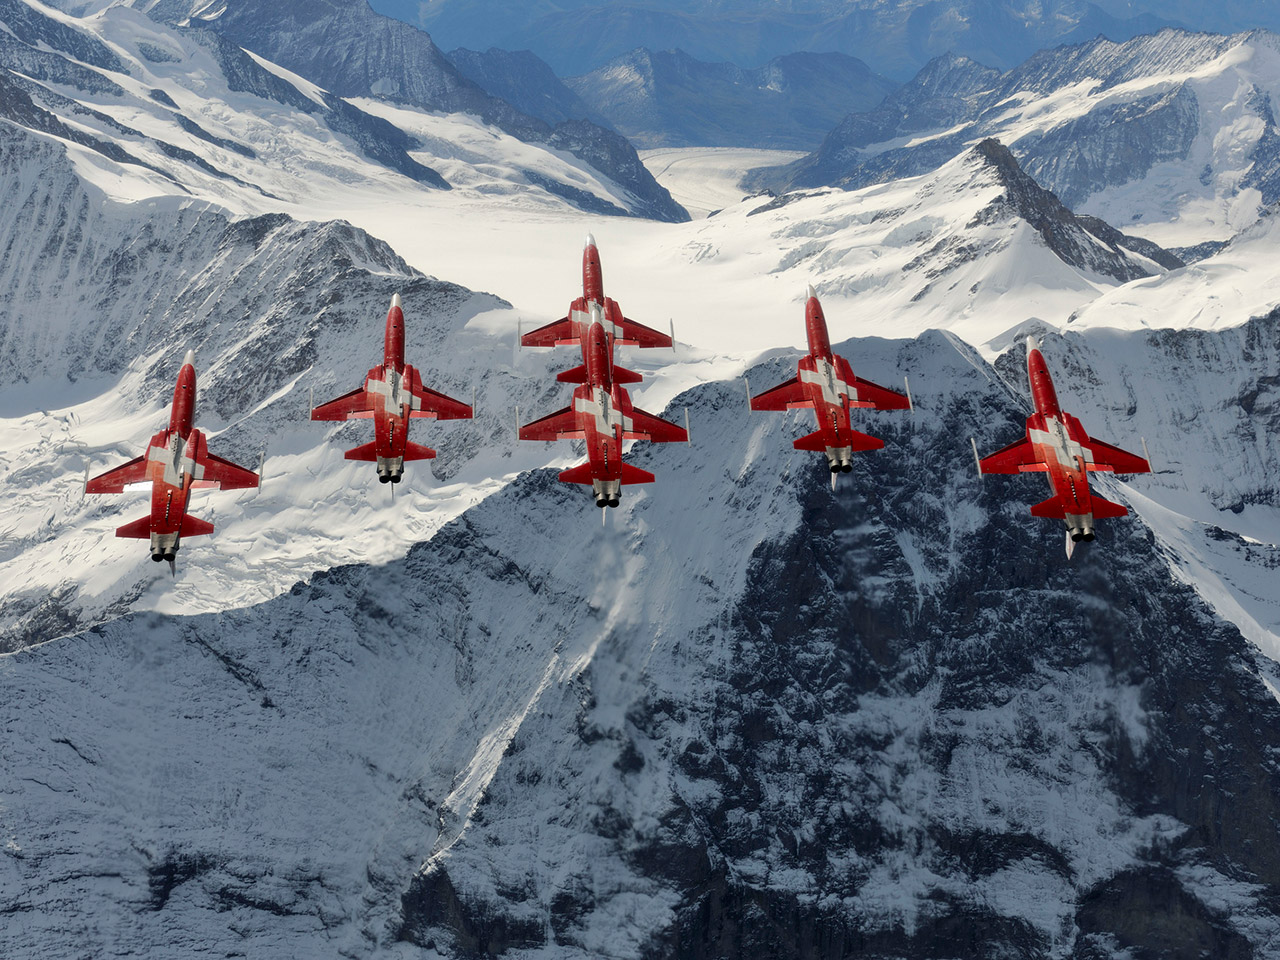 ... year. No other international show will feature both Patrouille Suisse